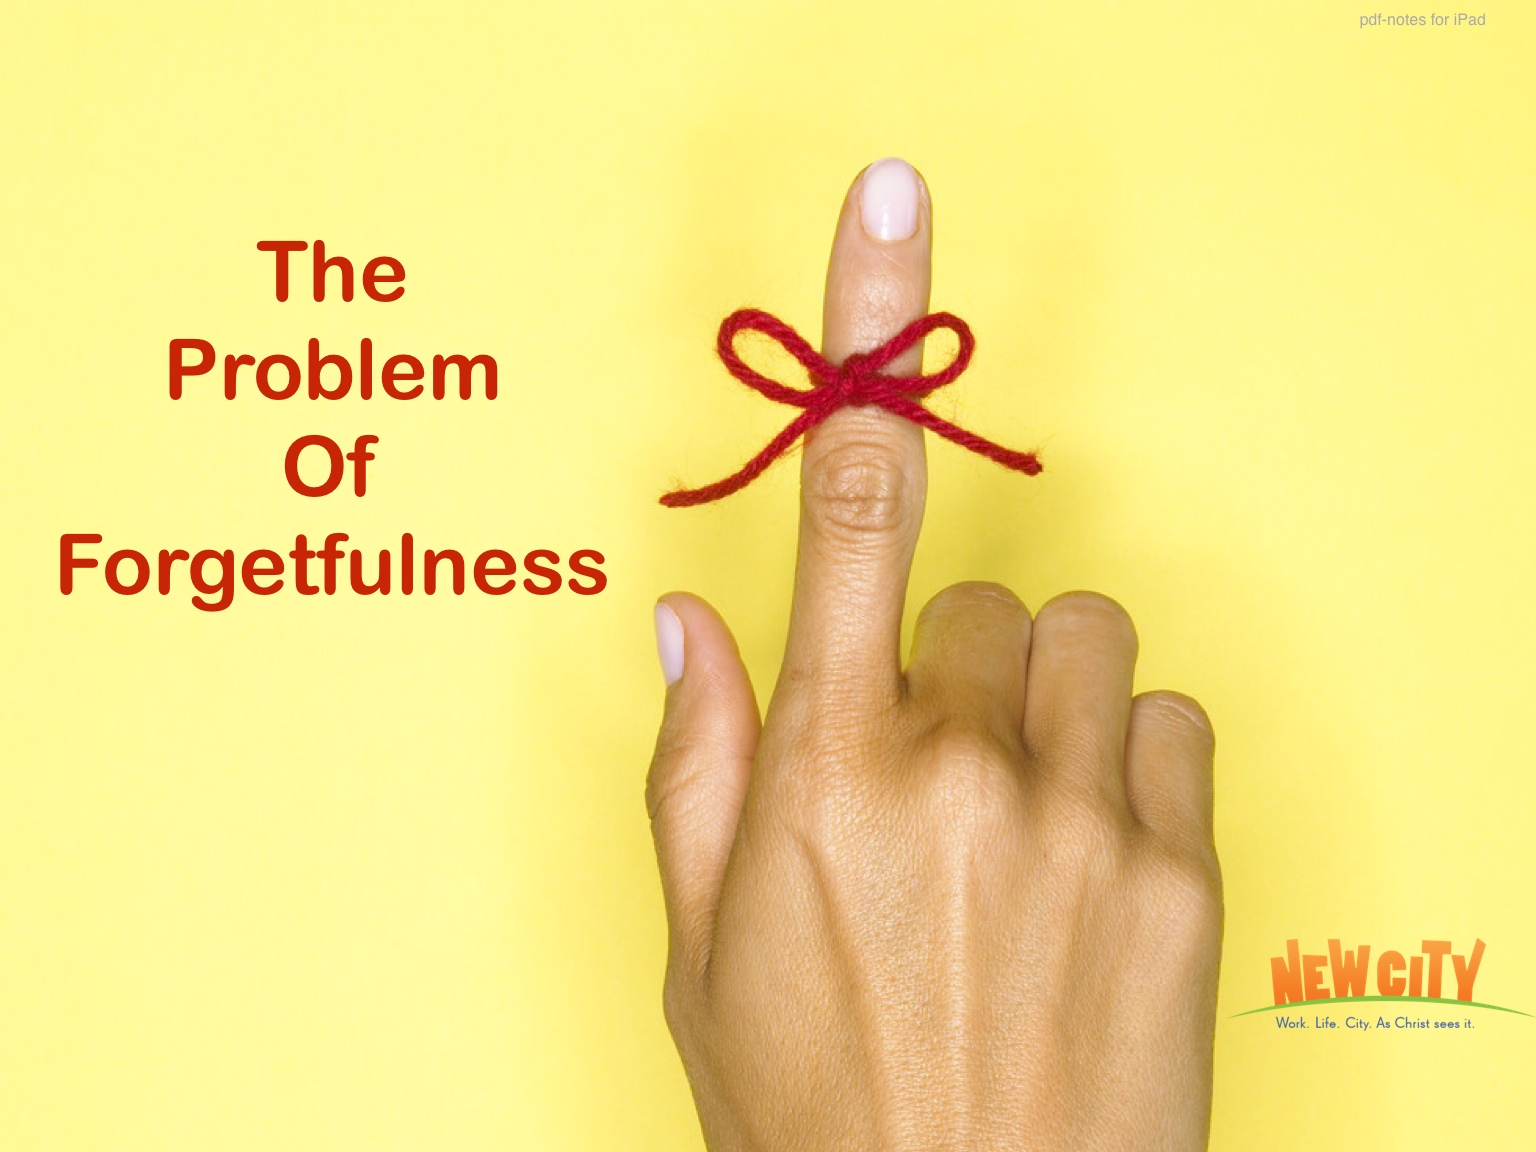 The Problem Of Forgetfulness